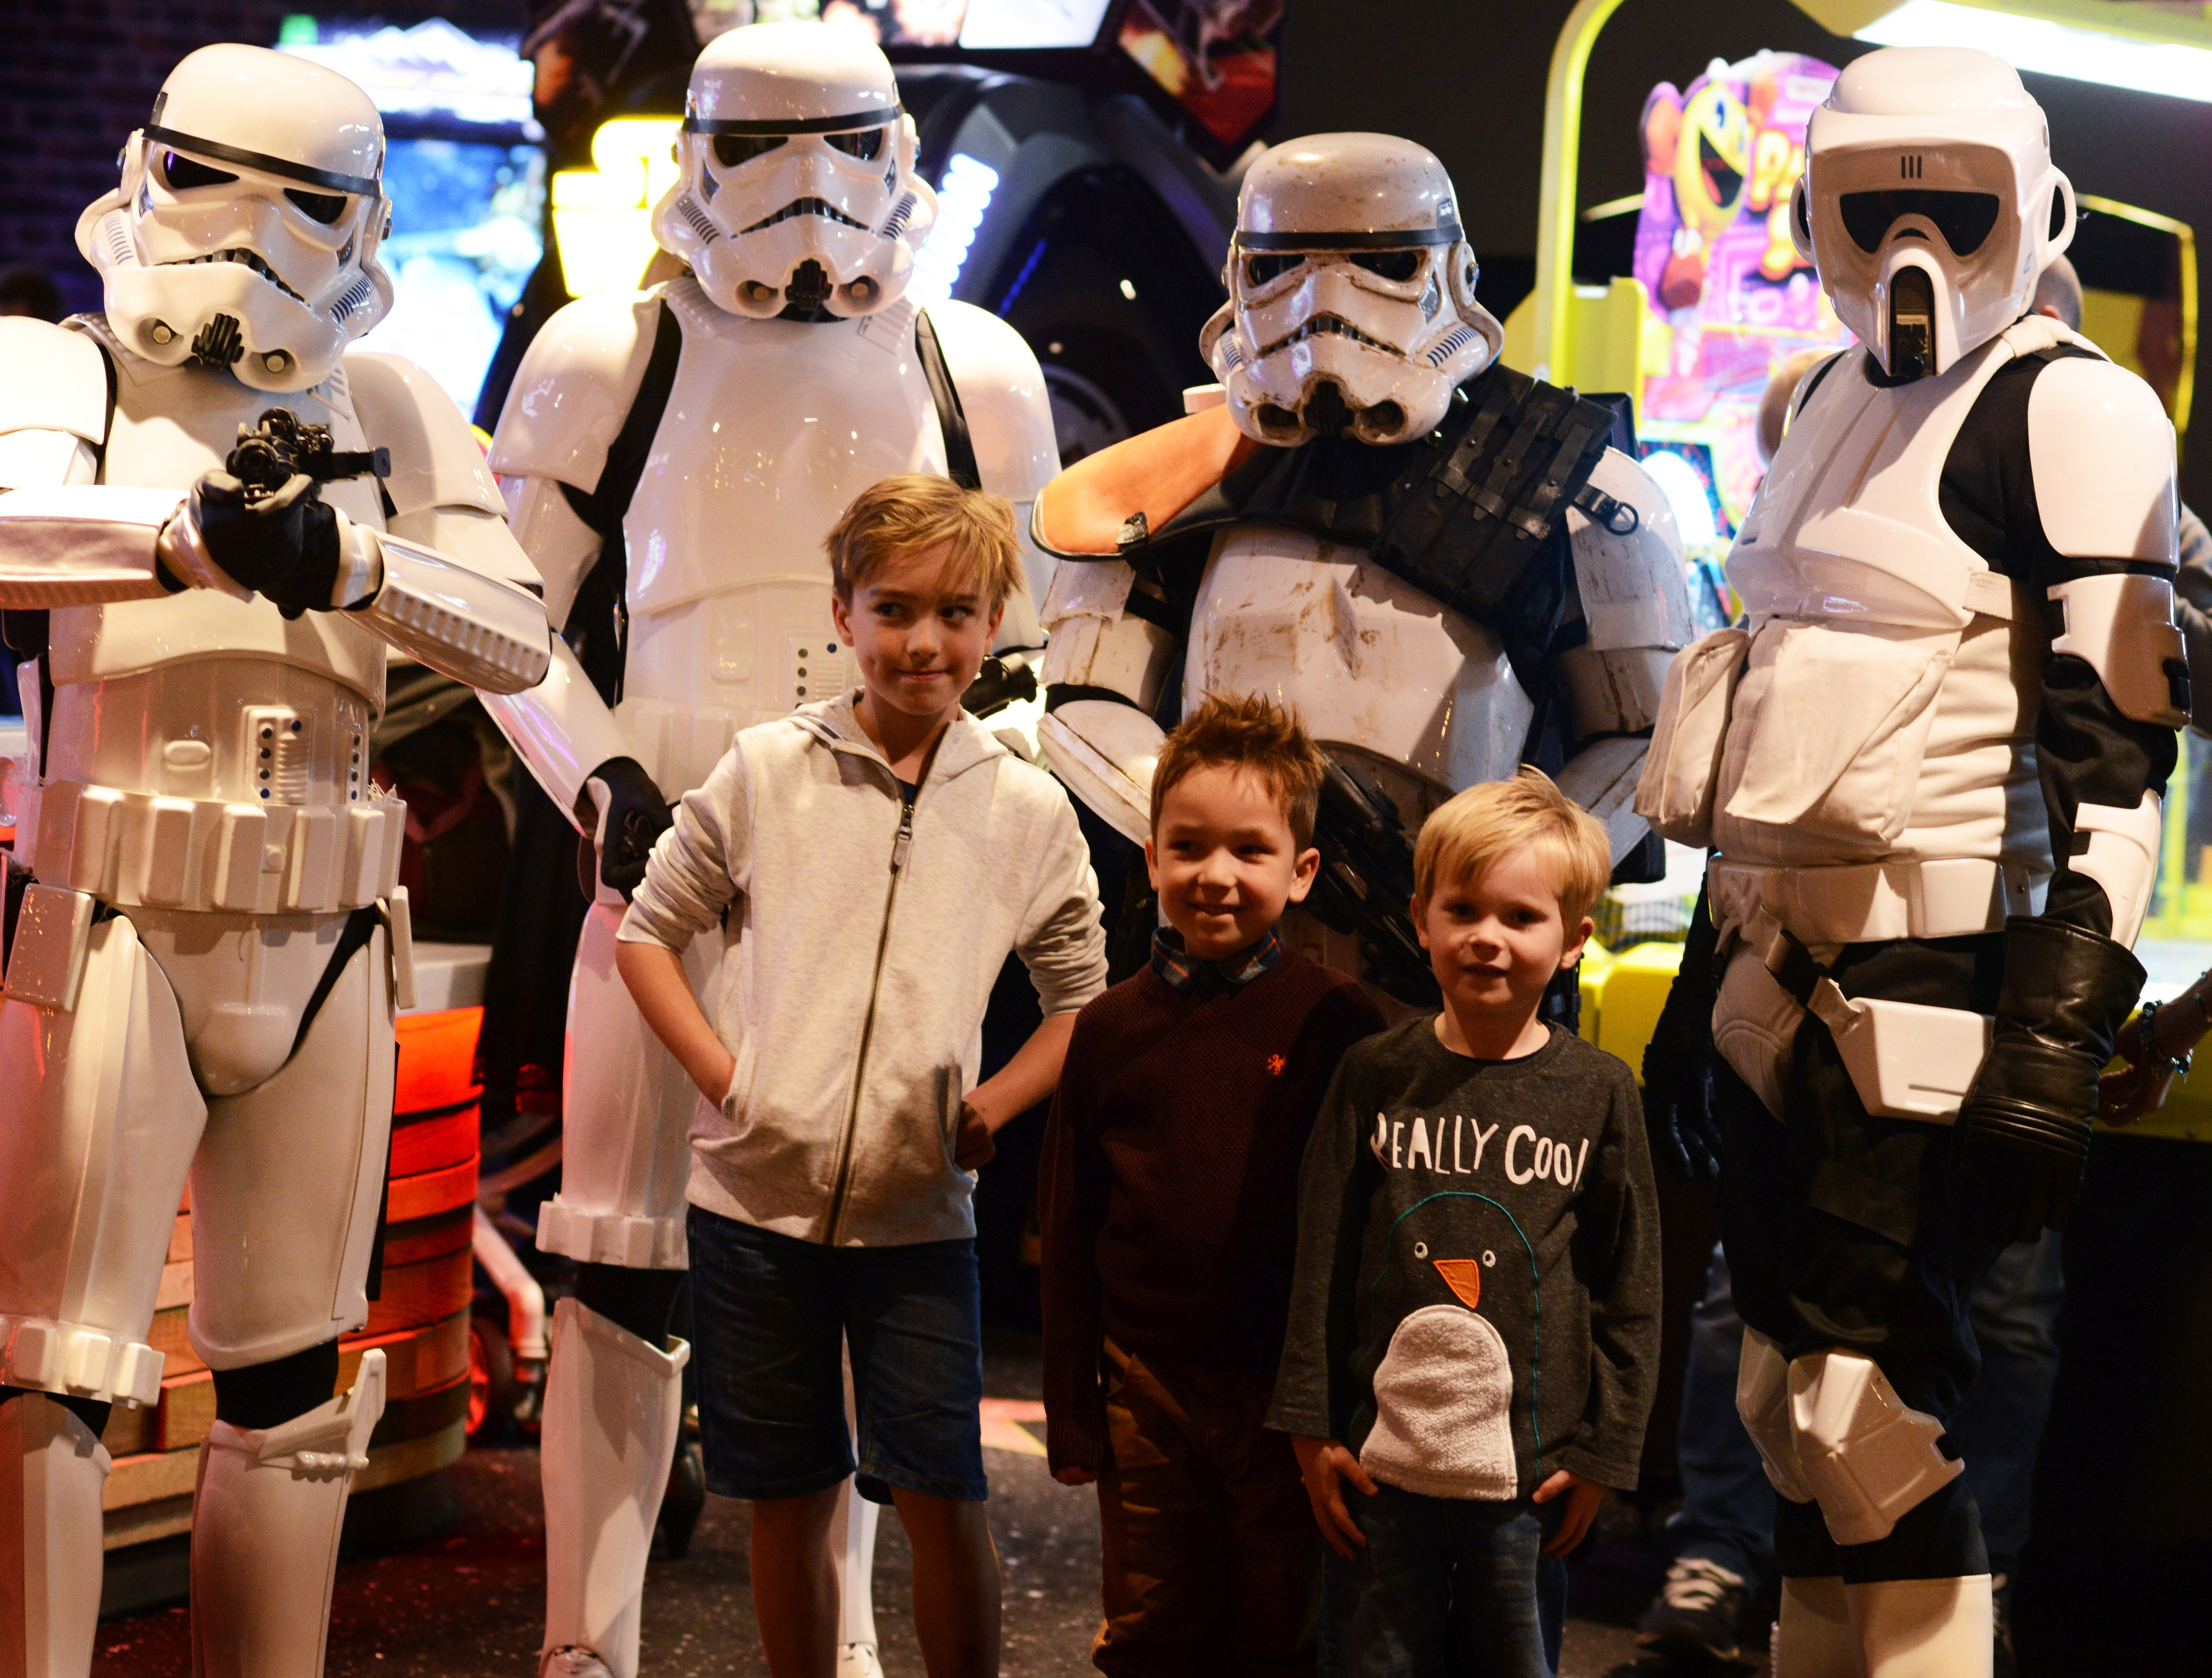 The Gloucestershire Troopers will be at Cineworld on Sunday.